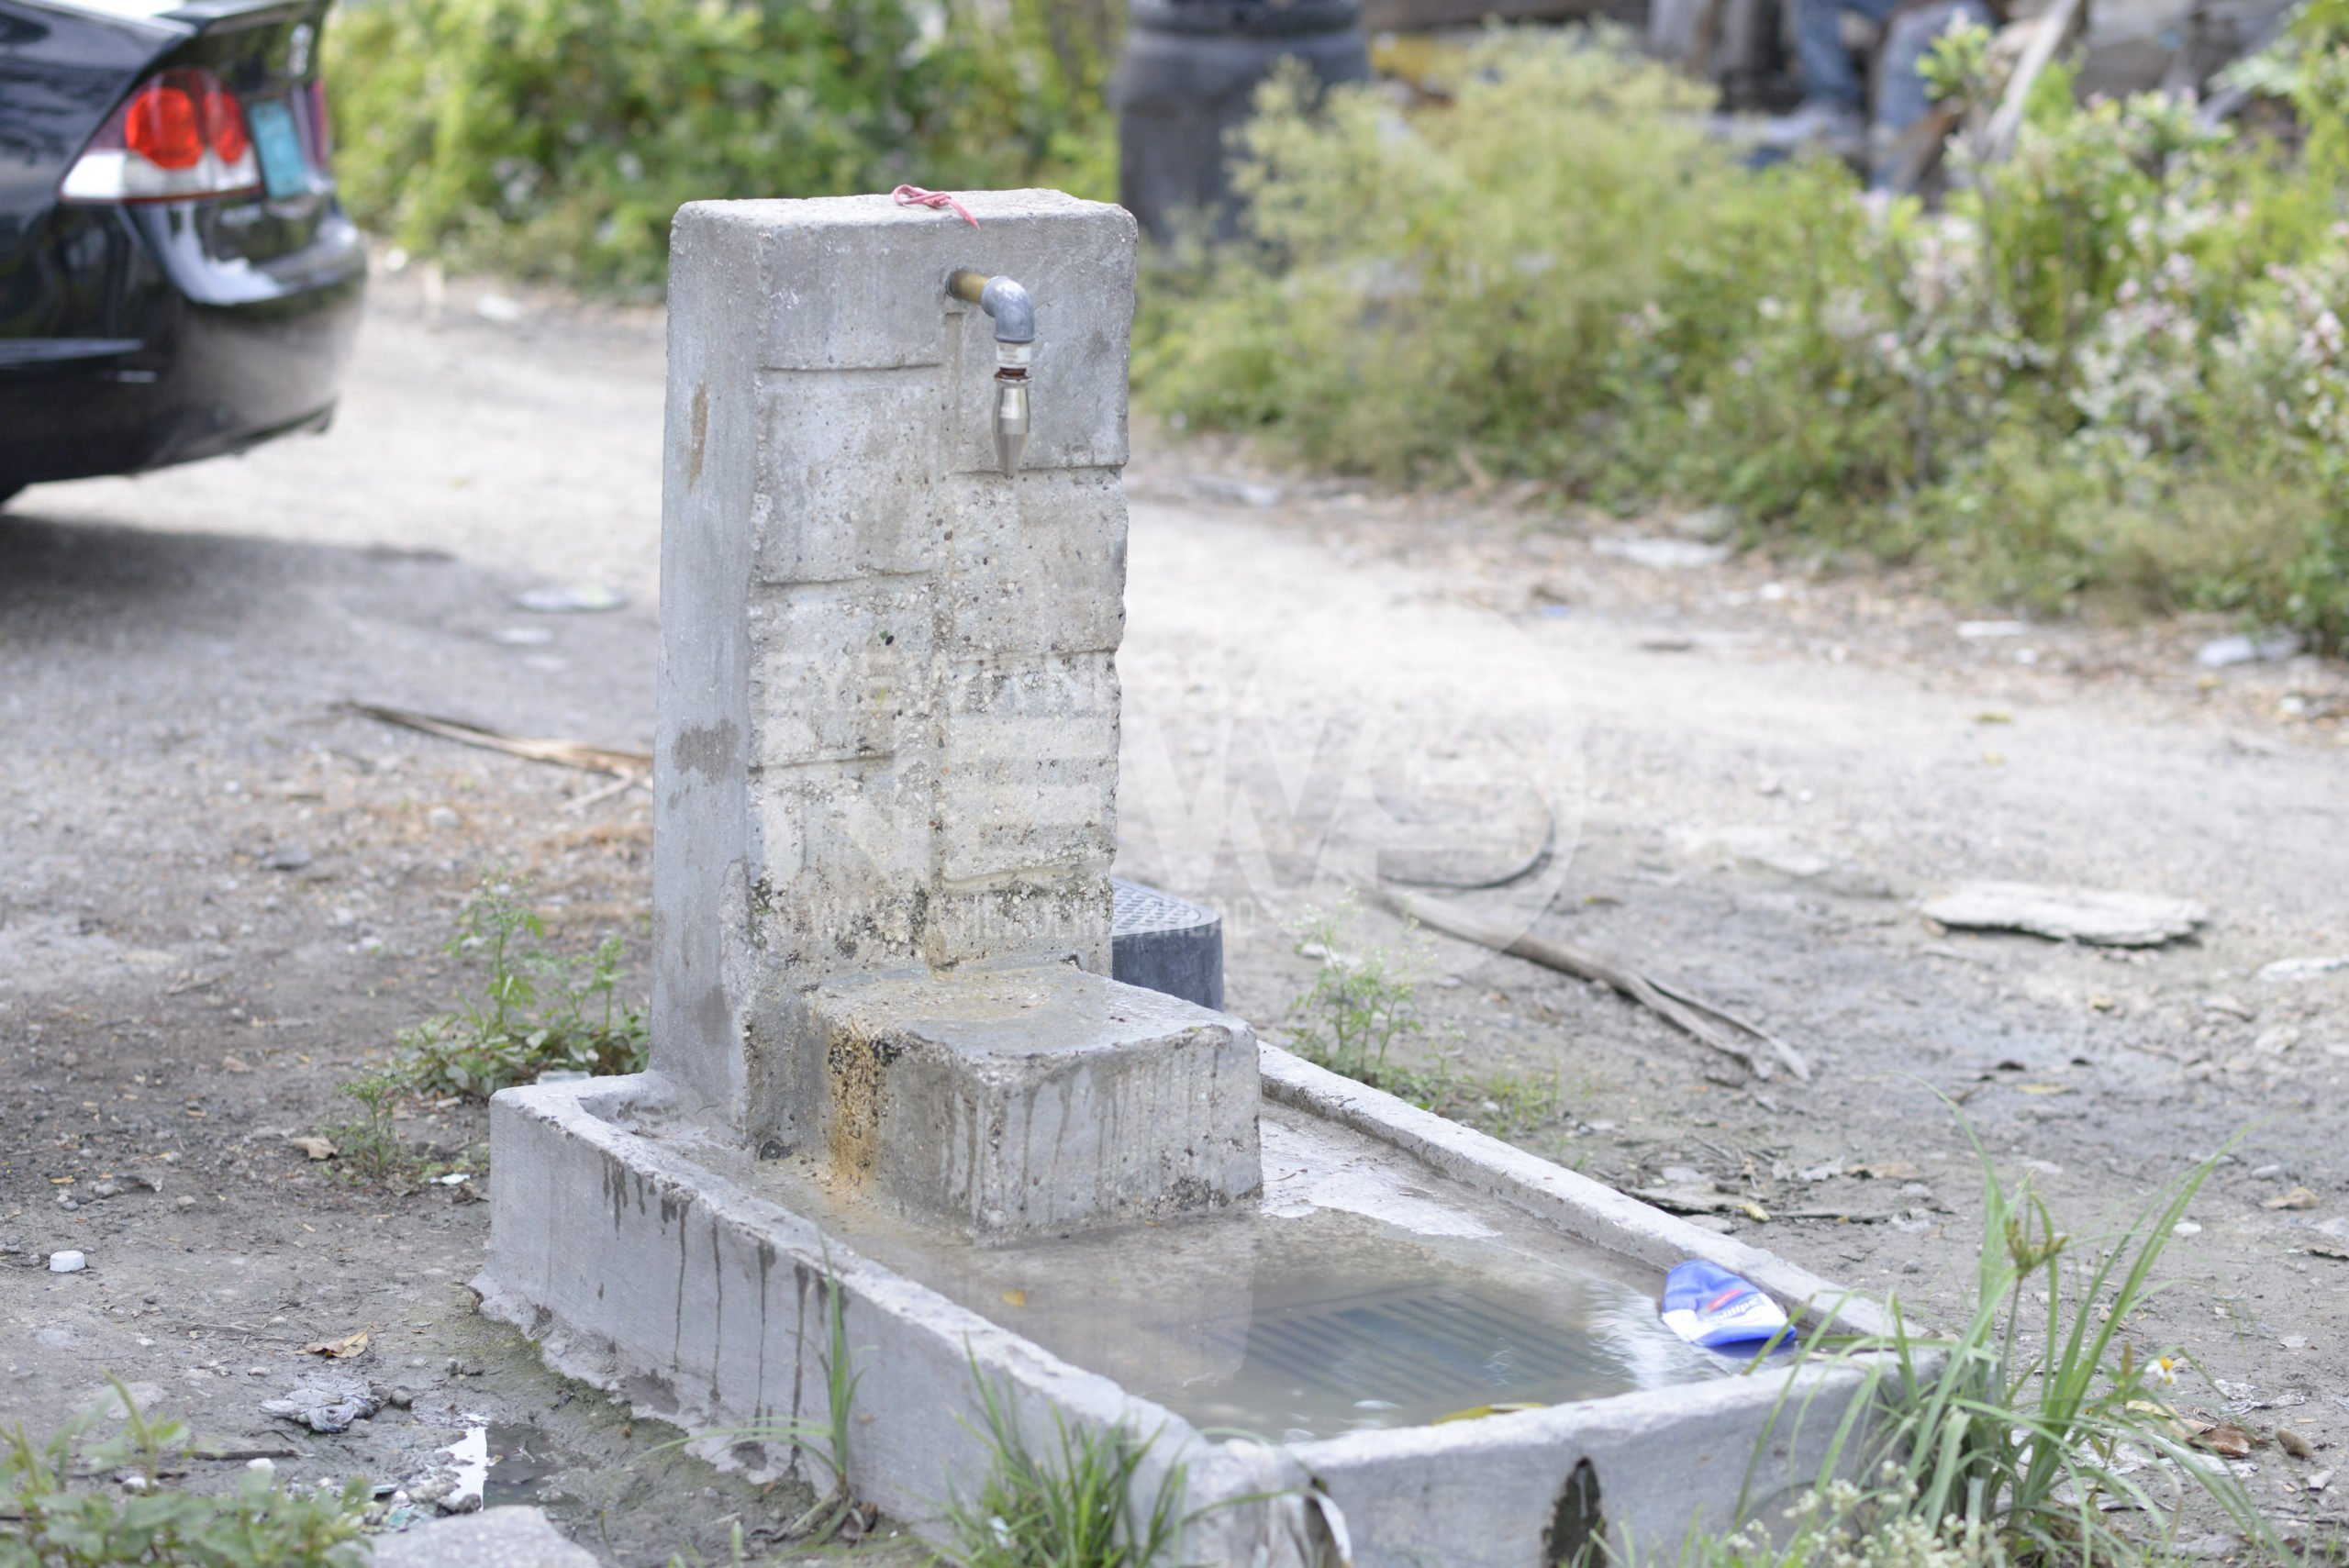 Fix and sanitize public standpipes in Centreville, says MP